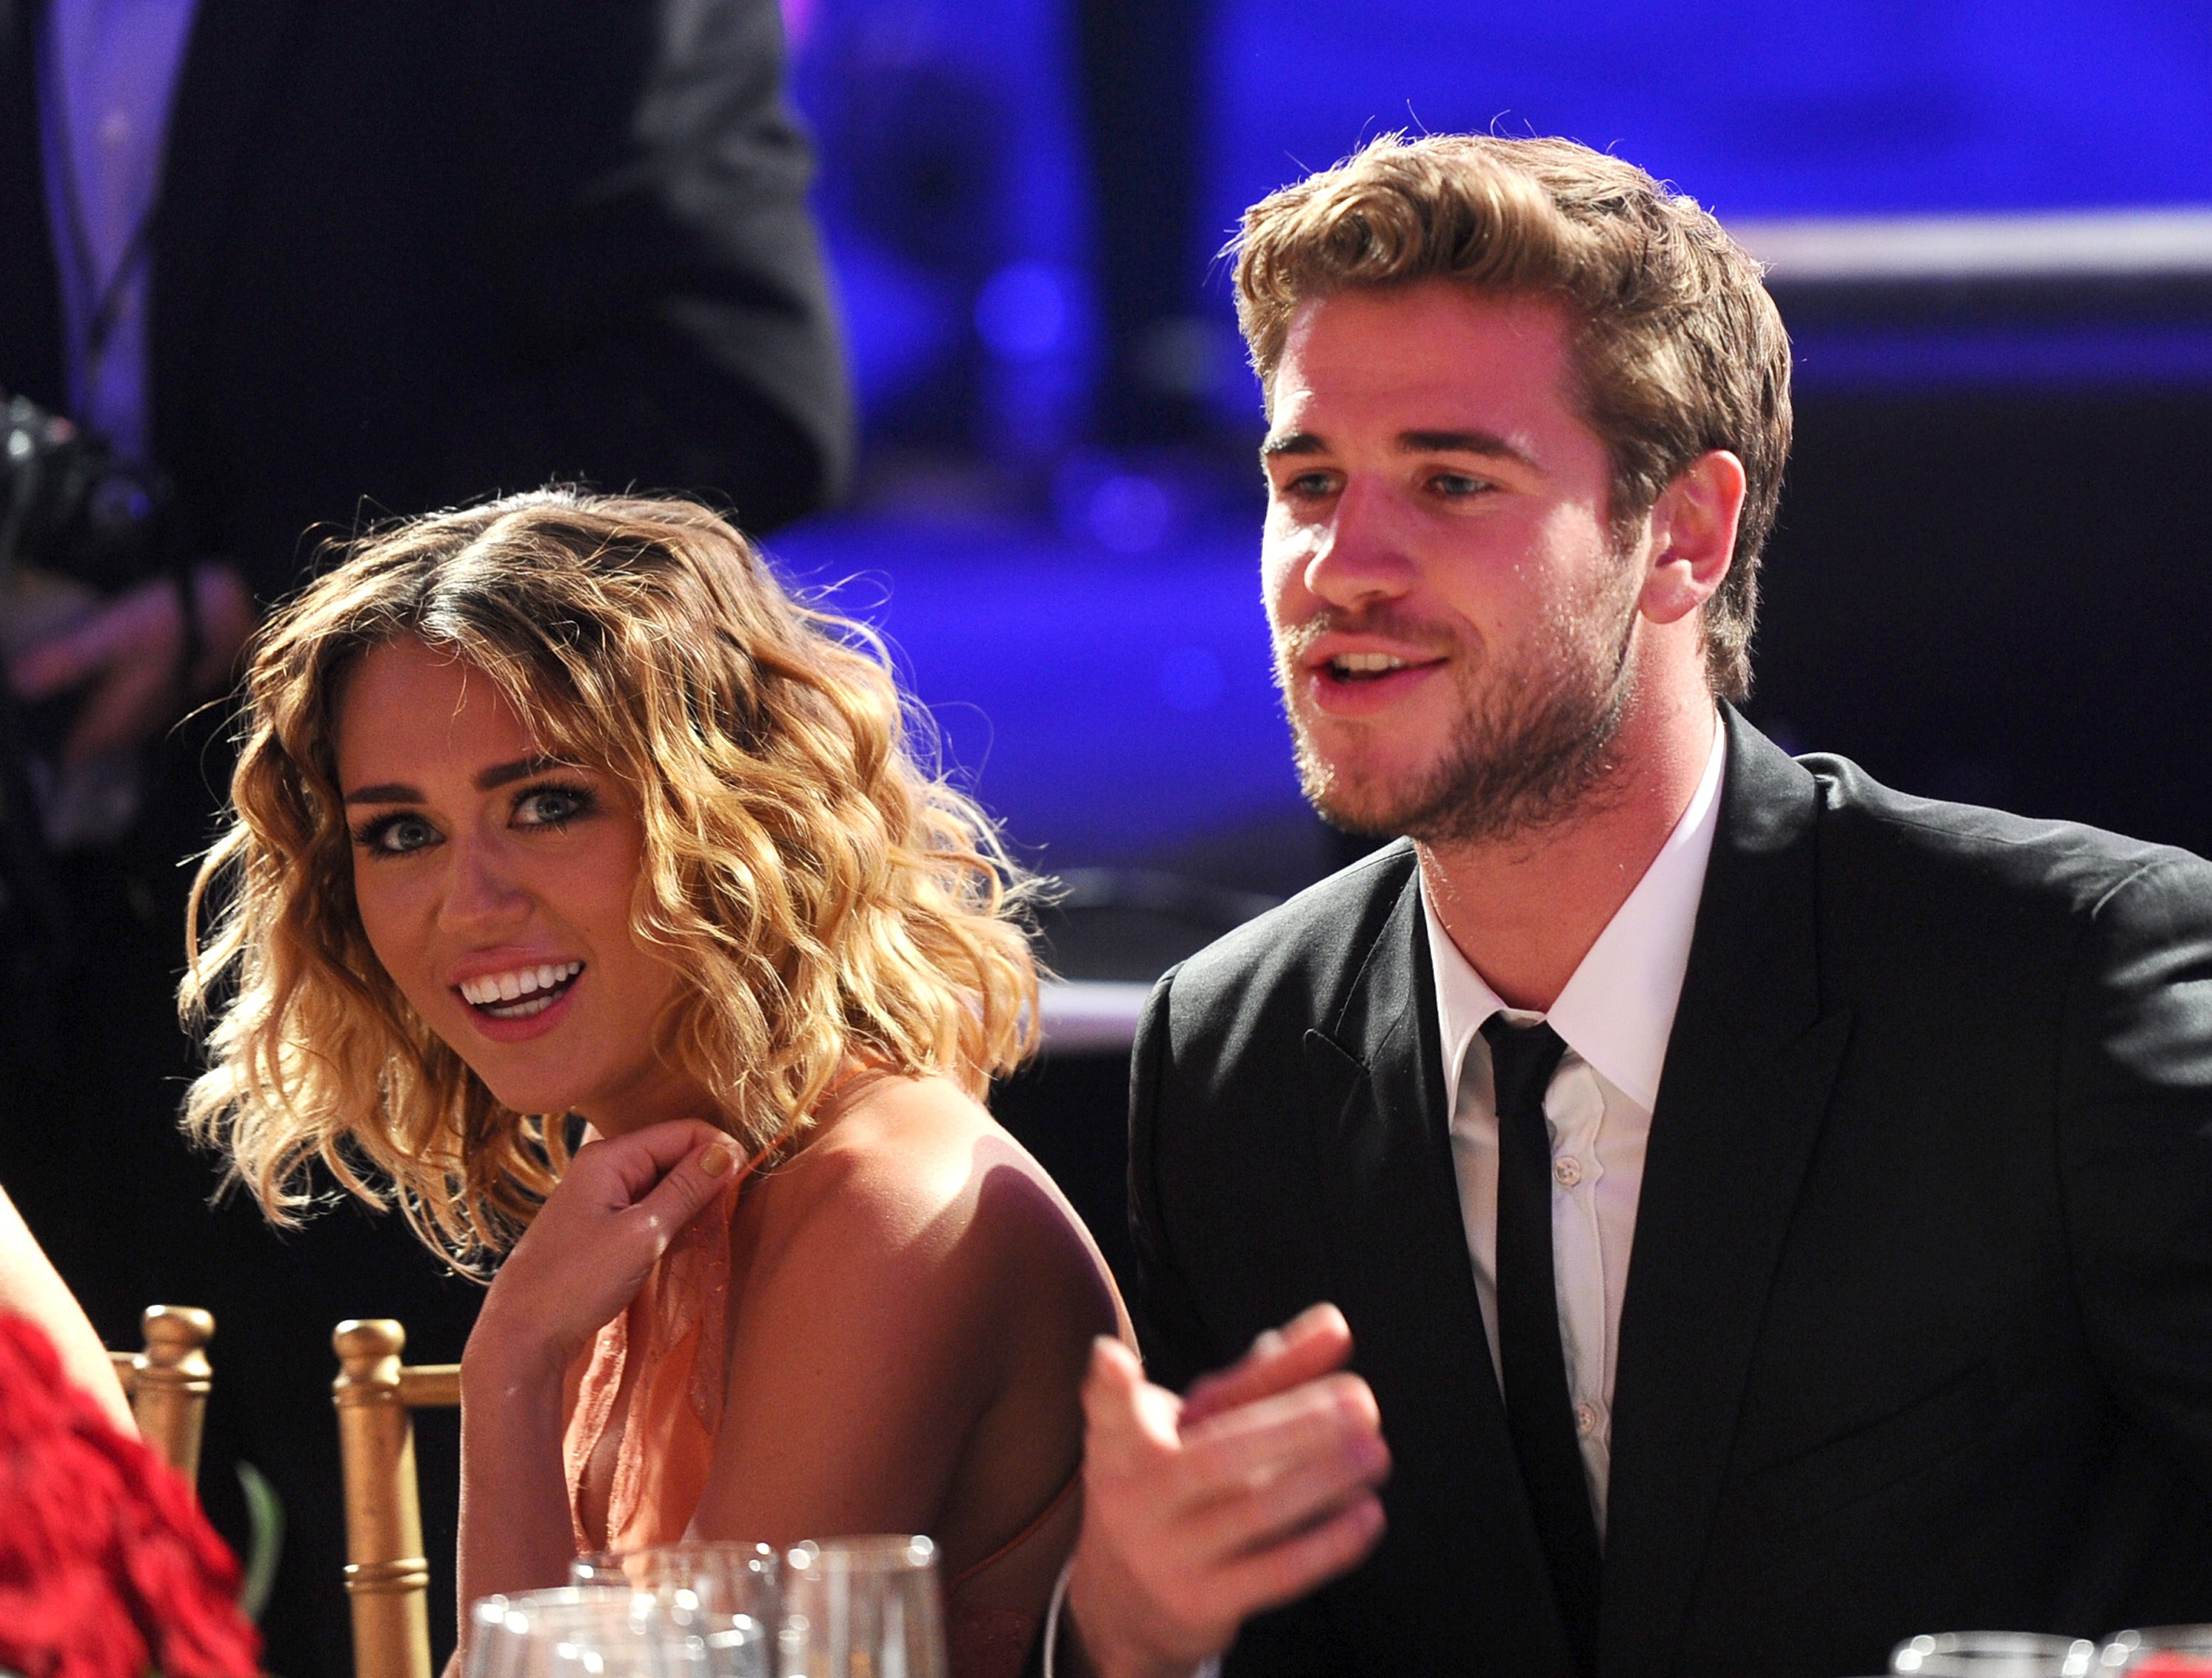 miley cyrus dating liam hemsworth 2011 A definitive timeline of miley cyrus and liam hemsworth's relationship december 2011: liam accompanies miley to the cnn heroes gala in los angeles.